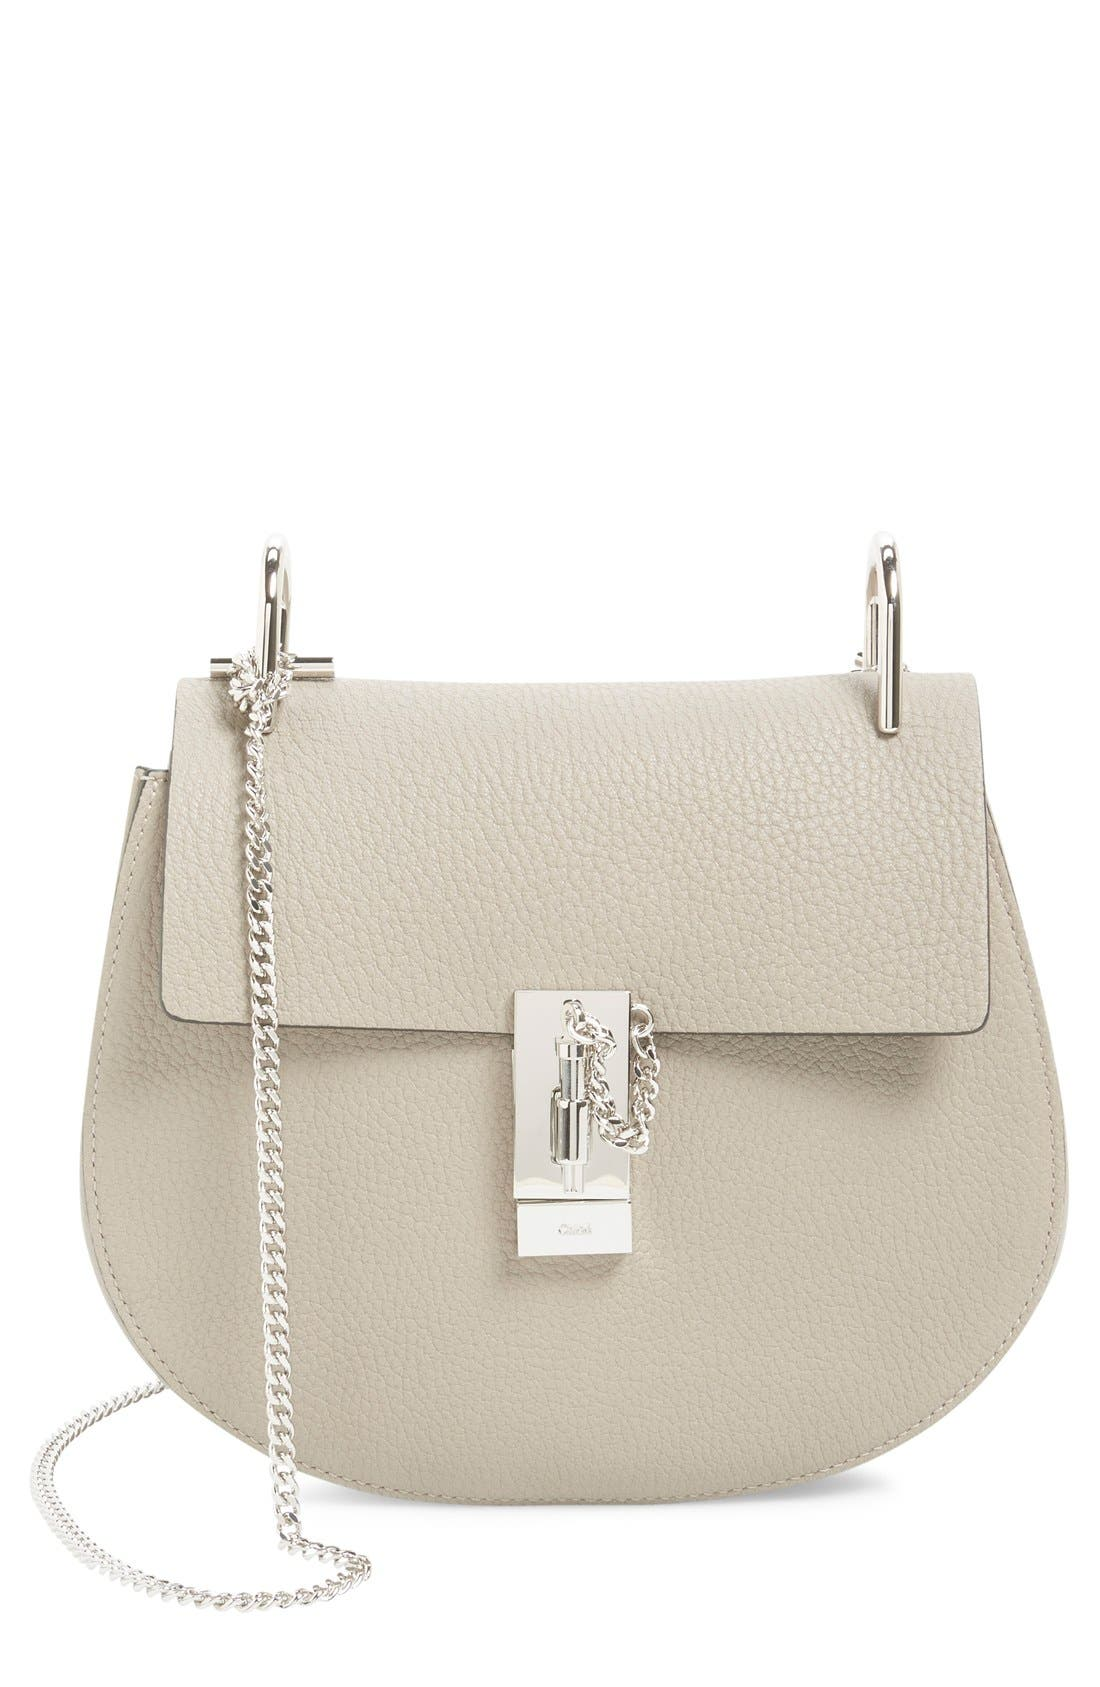 'Small Drew' Leather Shoulder Bag,                             Main thumbnail 1, color,                             Motty Grey